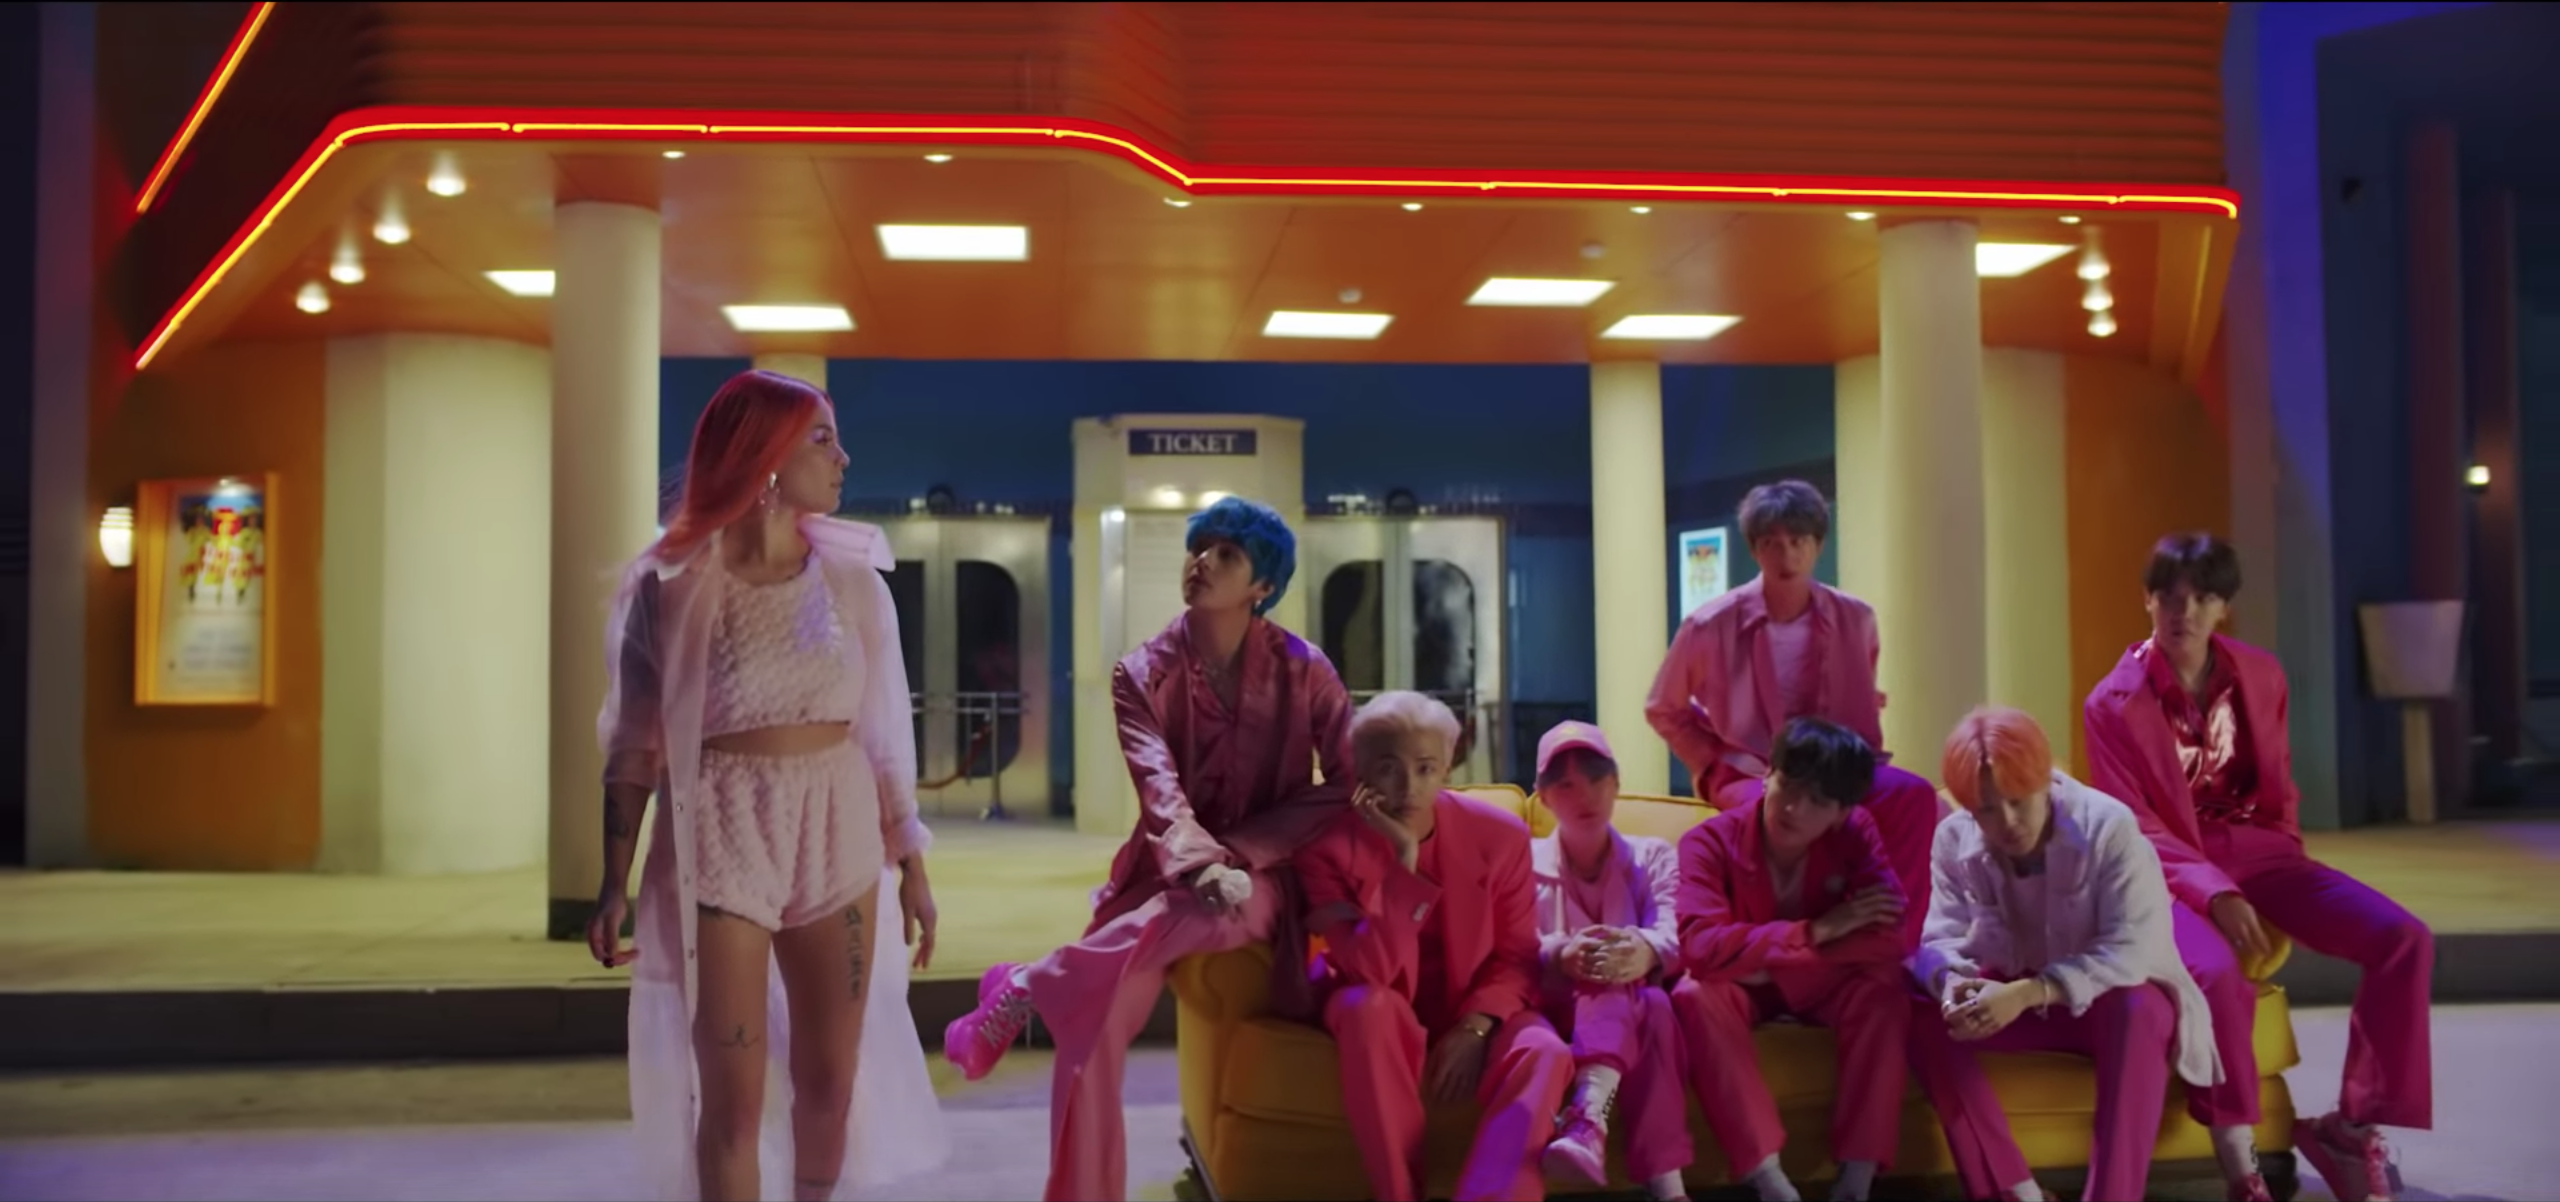 Seven member boy group BTS dressed in pink sitting on a bright yellow sofa looking at pop singer Halsey dressed in pastel pink the background is a building with a bright blue fluorescent sign that stays persona.